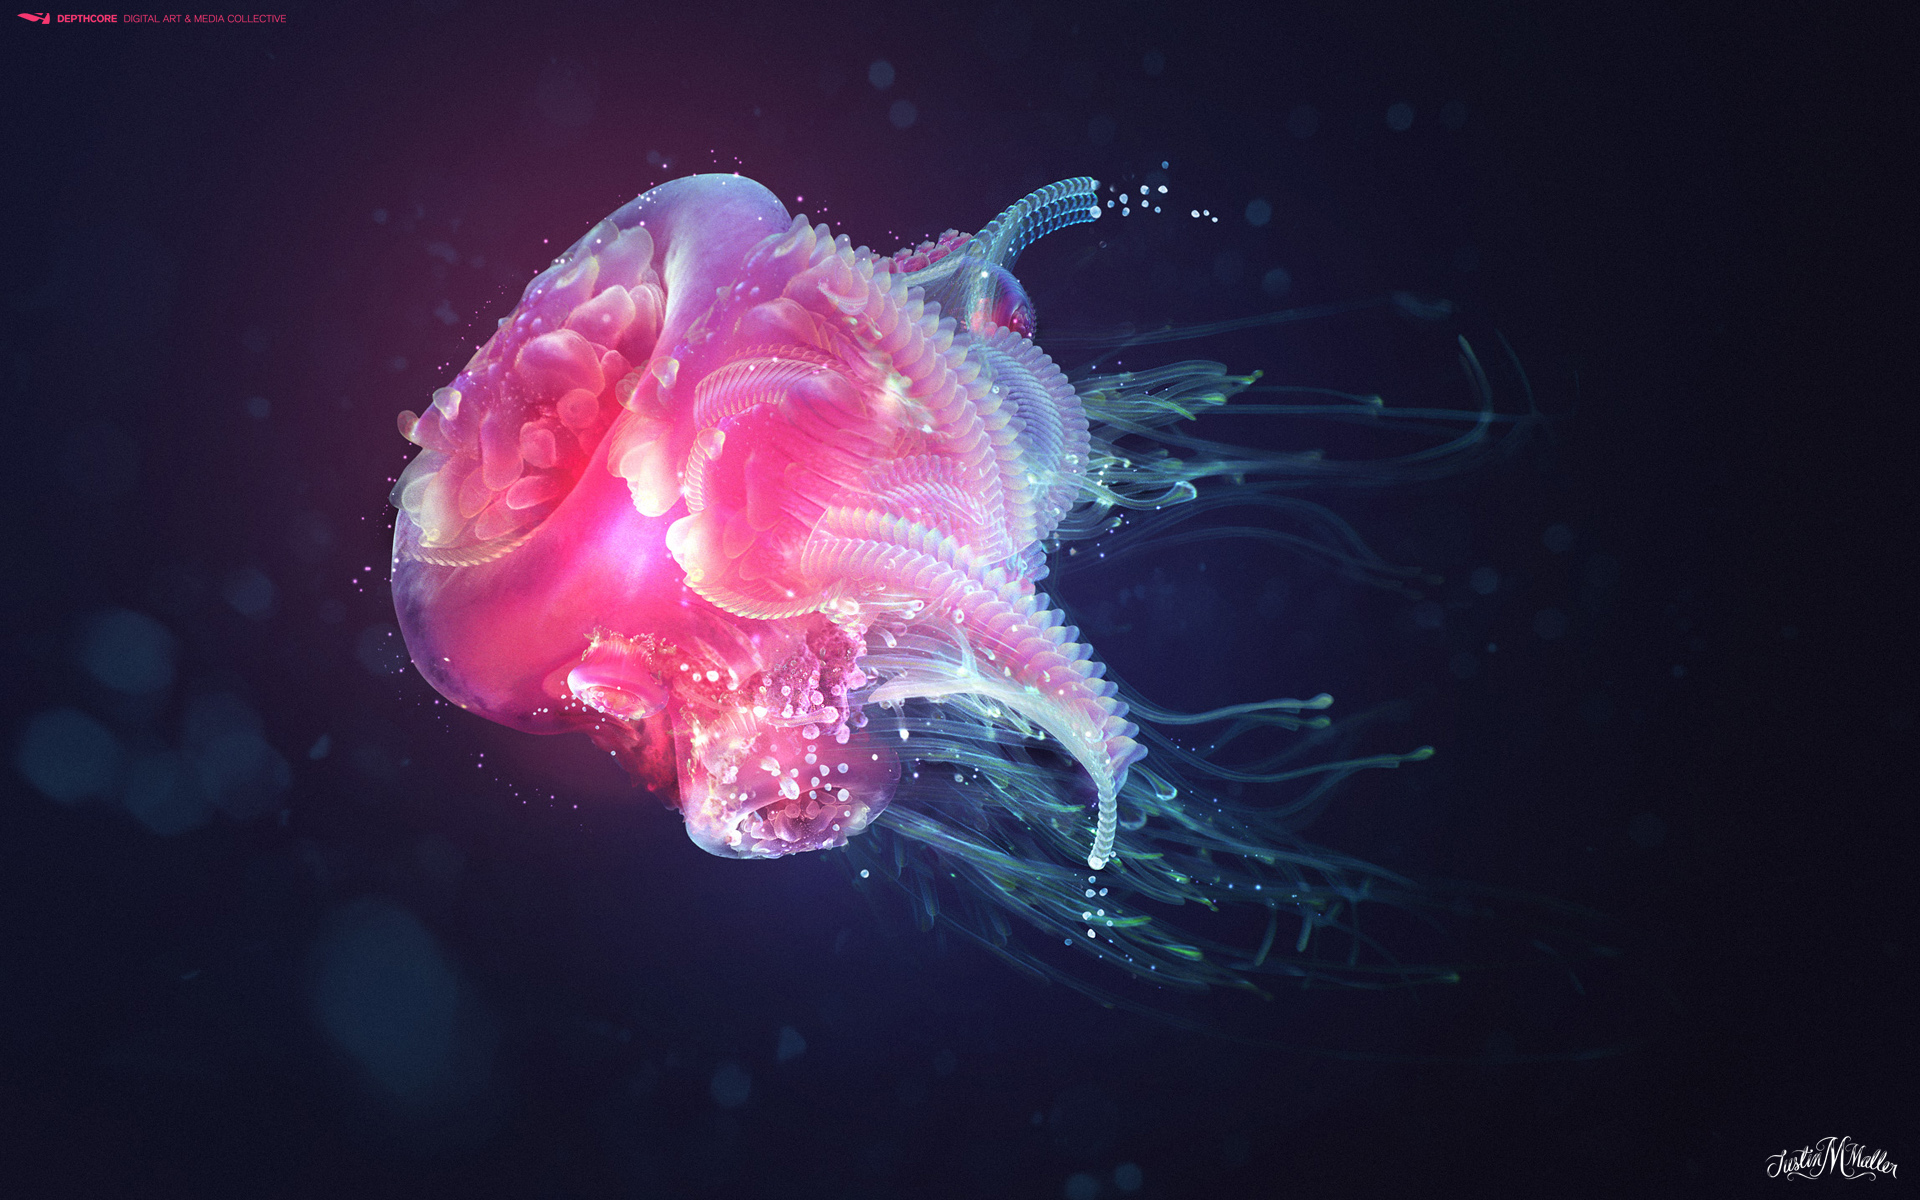 Jellyfish 197.3 Kb